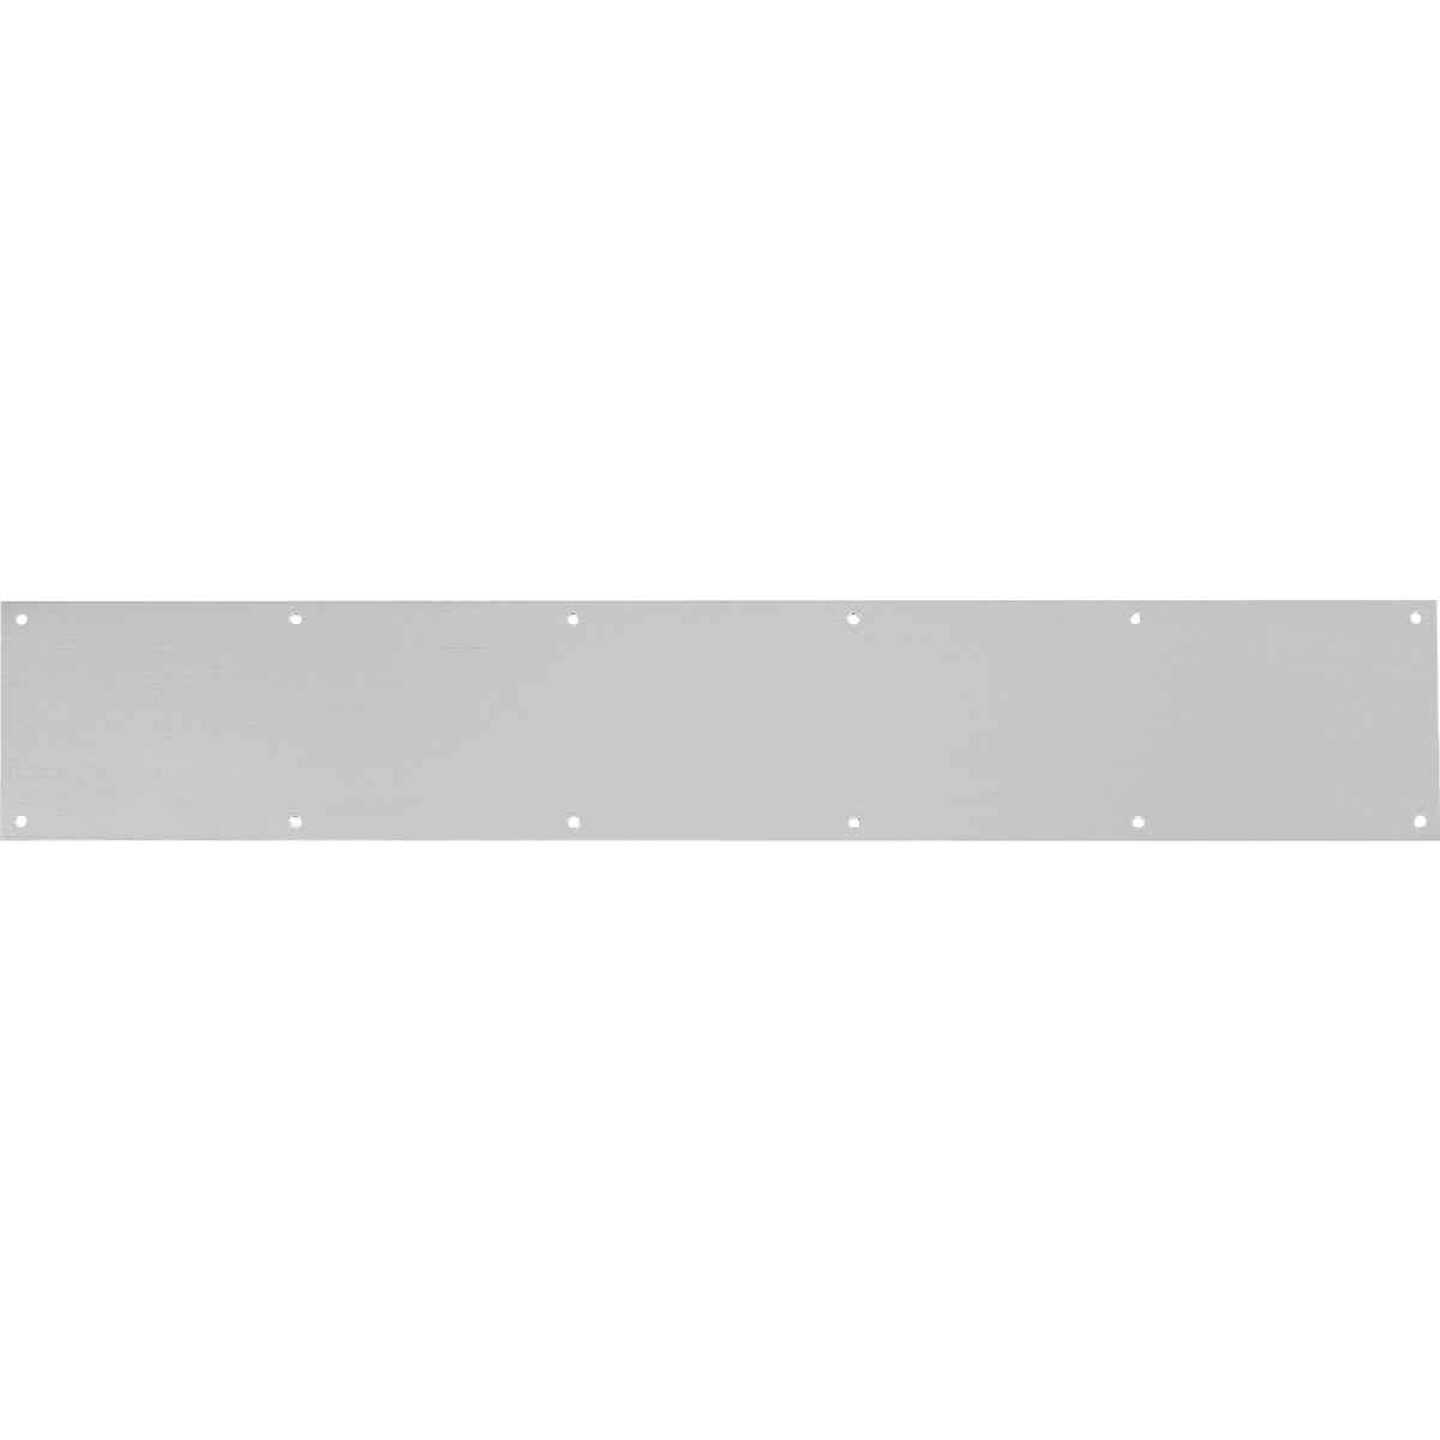 Tell 6 In. x 34 In. Aluminum Kick Plate Image 1